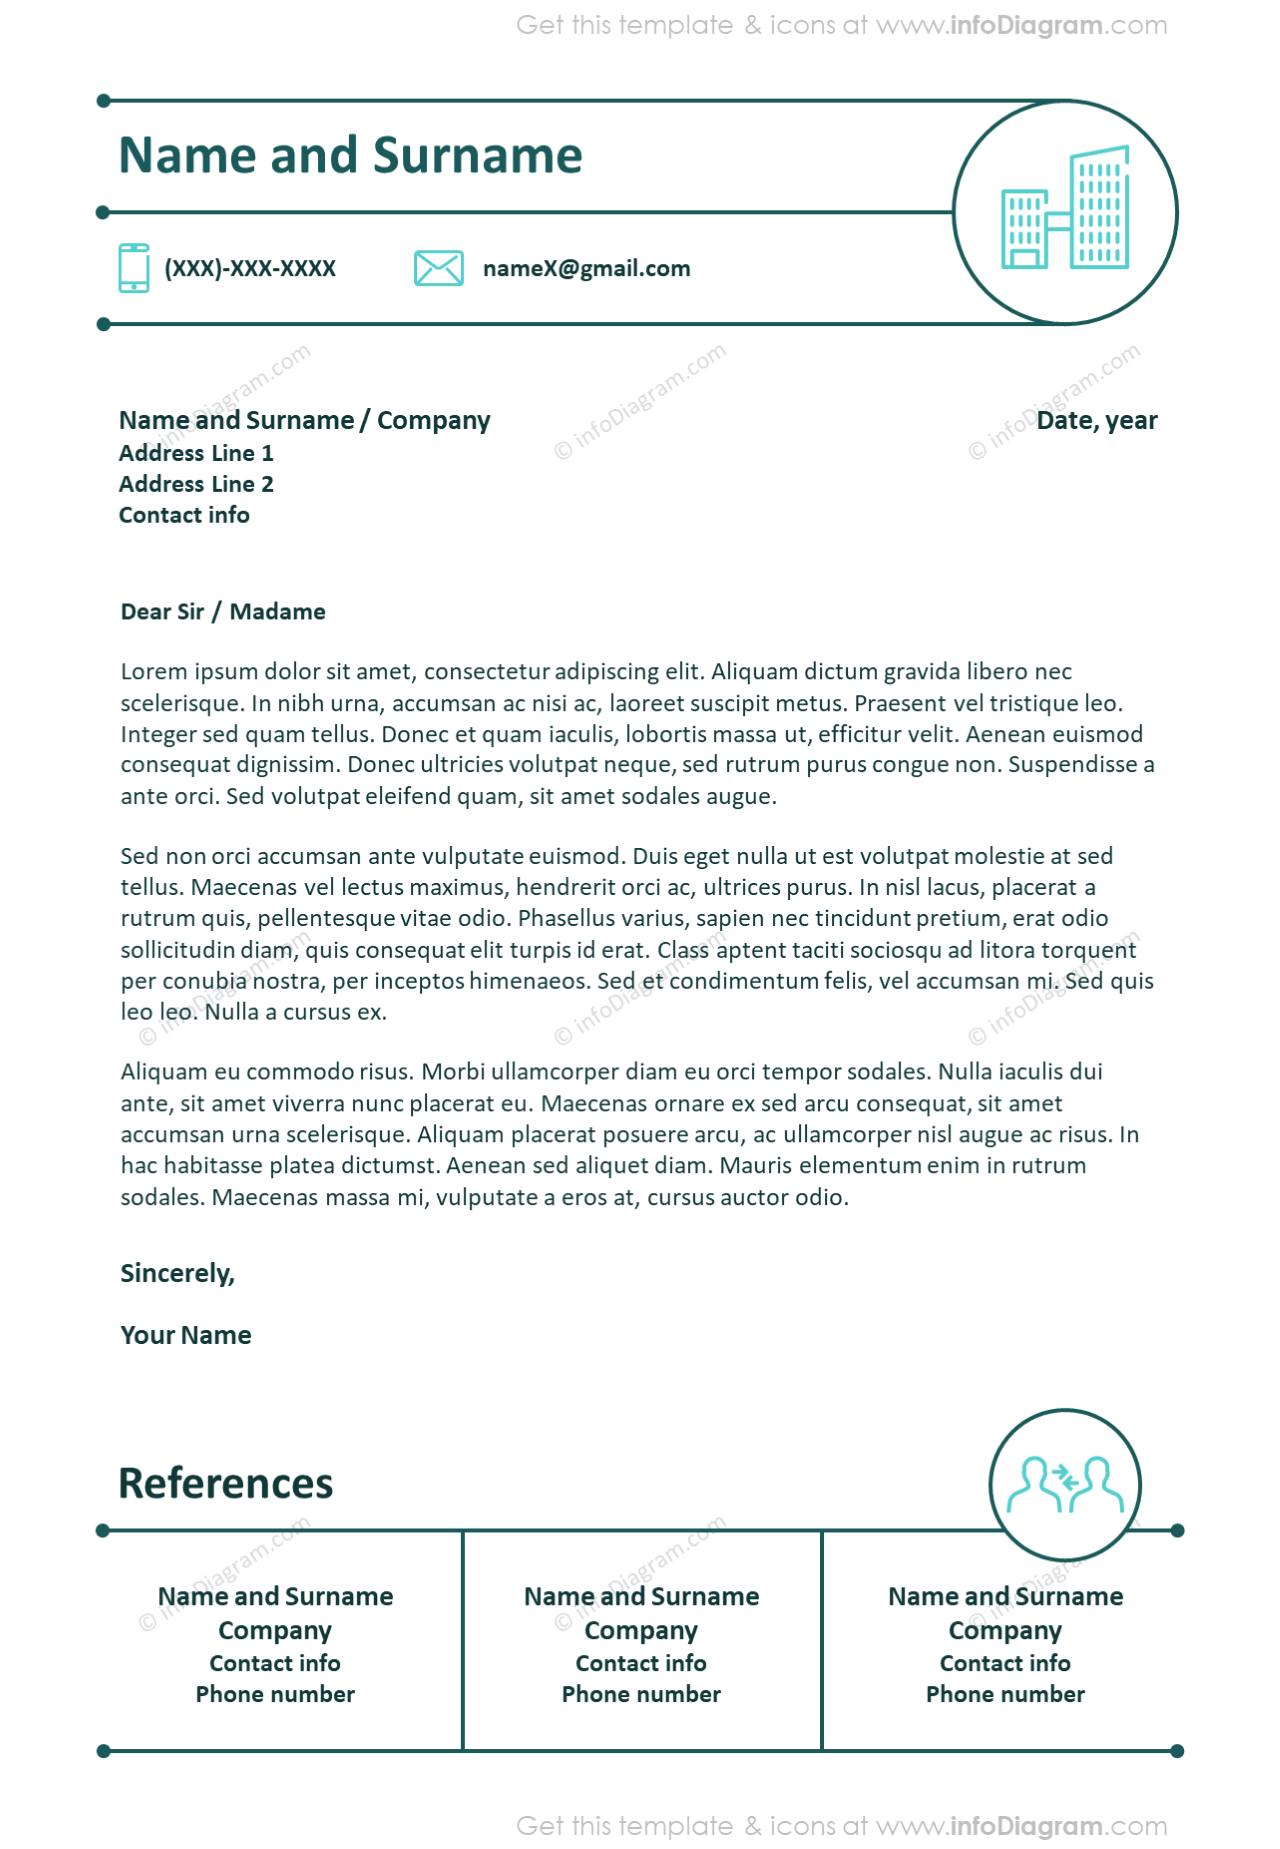 Creative outline personal cover letter with references